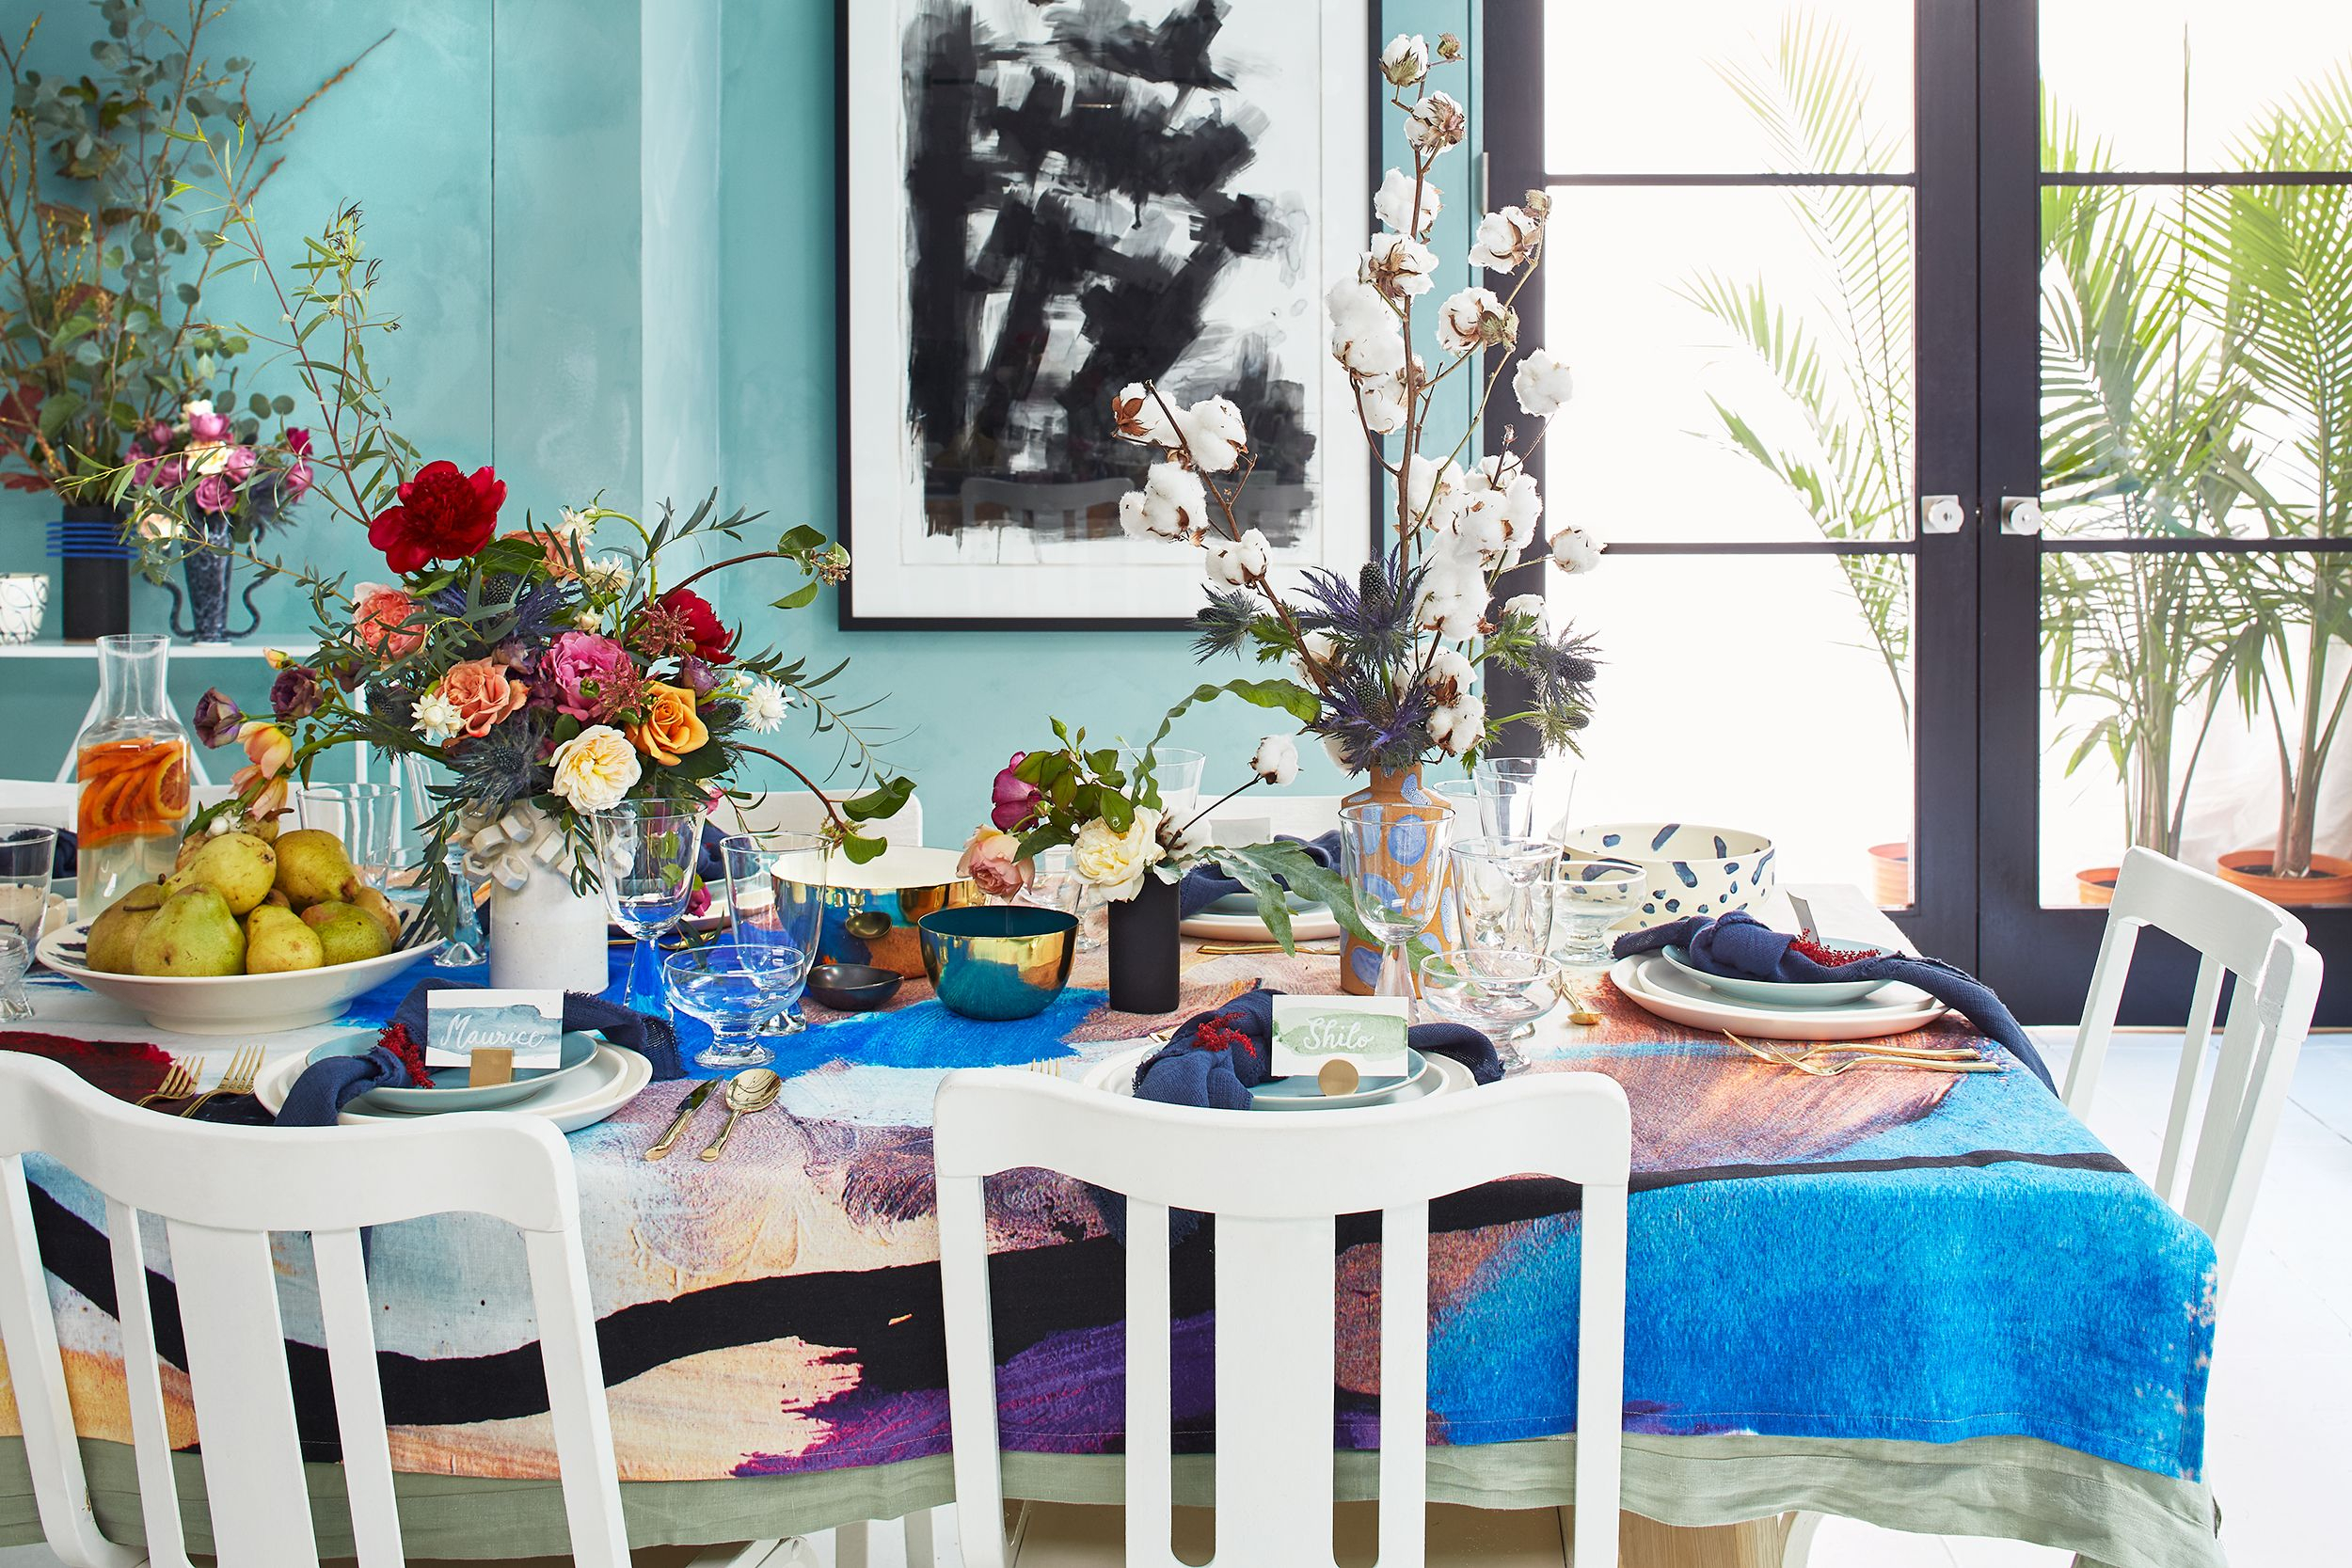 25 Beautiful Spring Table Setting Ideas – Stylish Spring Regarding Recent Blended Fabric Spring Party Wall Hangings (View 3 of 20)